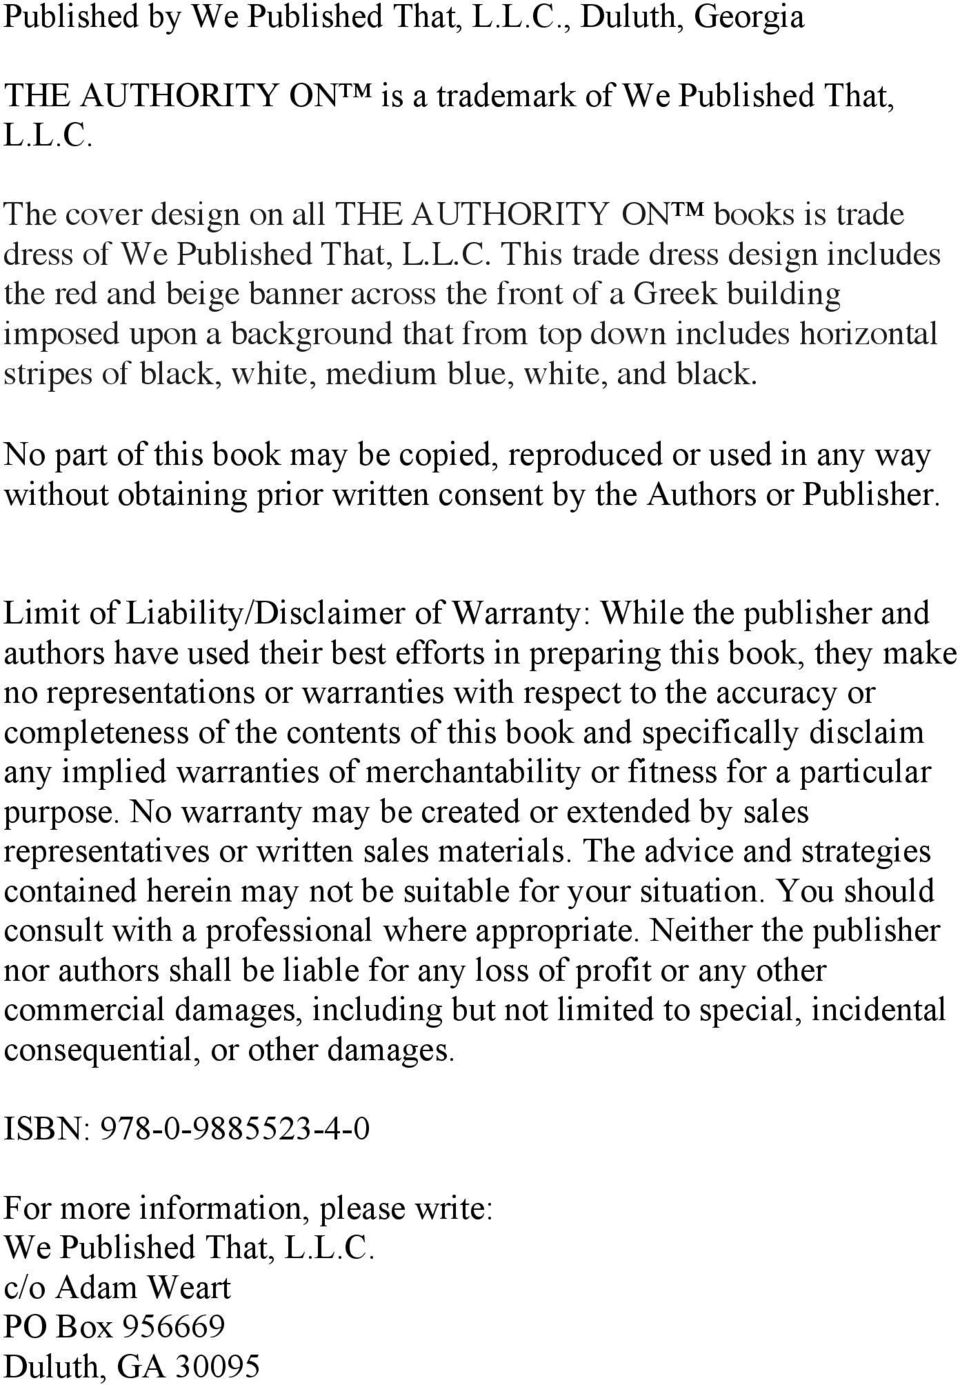 blue, white, and black. No part of this book may be copied, reproduced or used in any way without obtaining prior written consent by the Authors or Publisher.